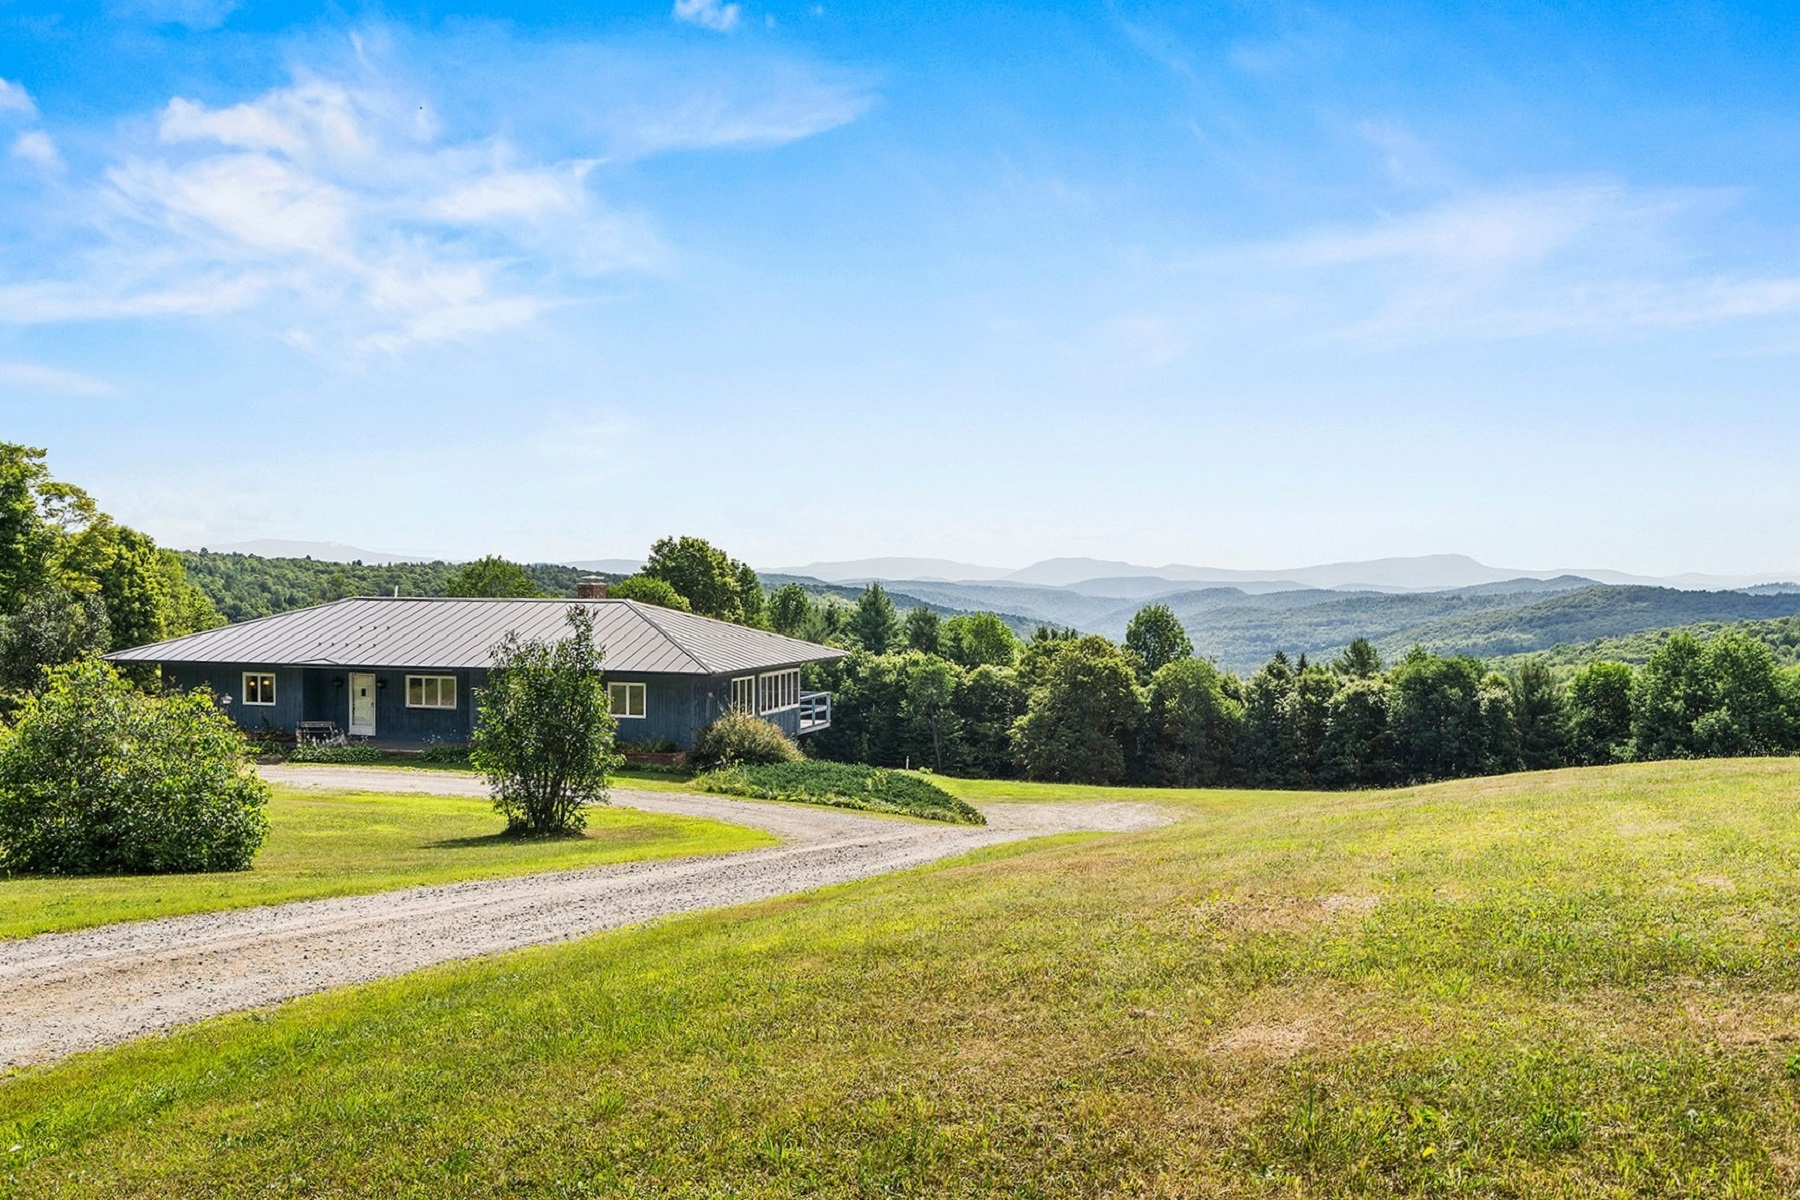 Single Family Homes for Sale at Mid-Century Modern Home 397 McIver Road Vershire, Vermont 05079 United States